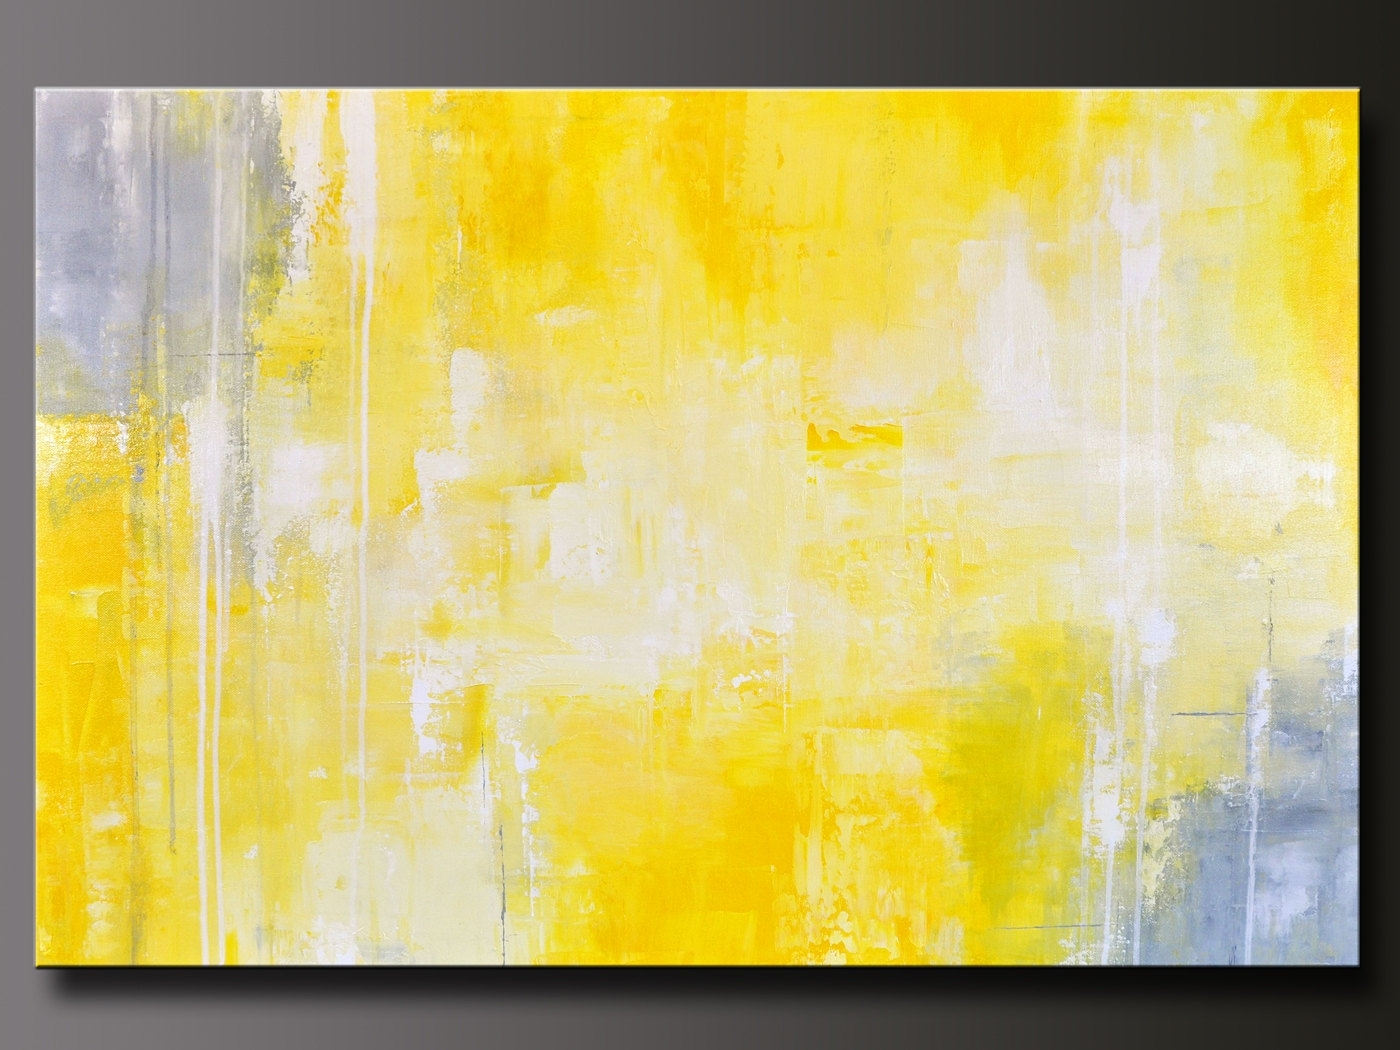 Wall Art Designs: Yellow And Gray Wall Art Diy Wall Art Washington In Recent Yellow And Grey Abstract Wall Art (View 19 of 20)